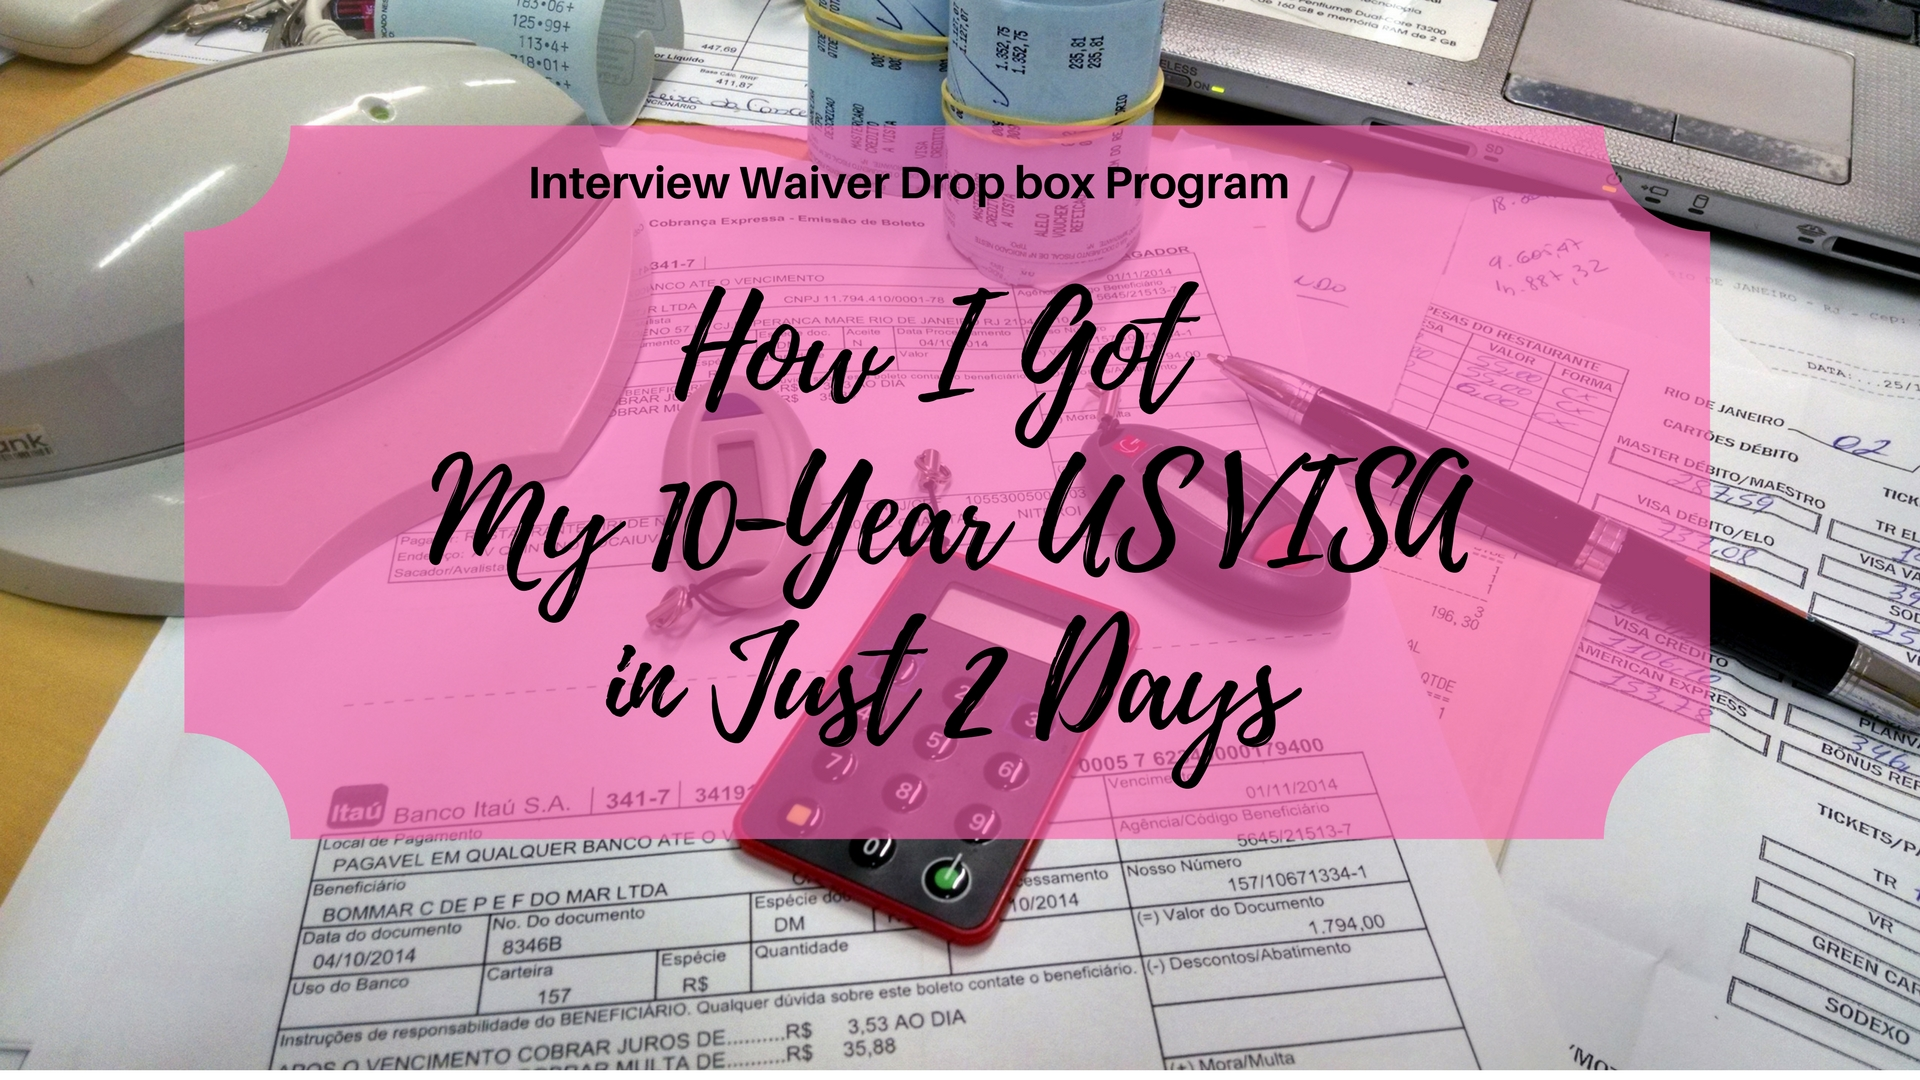 Crystal Neri | How I Got My 10-Year US VISA In Just 2 Days - Crystal